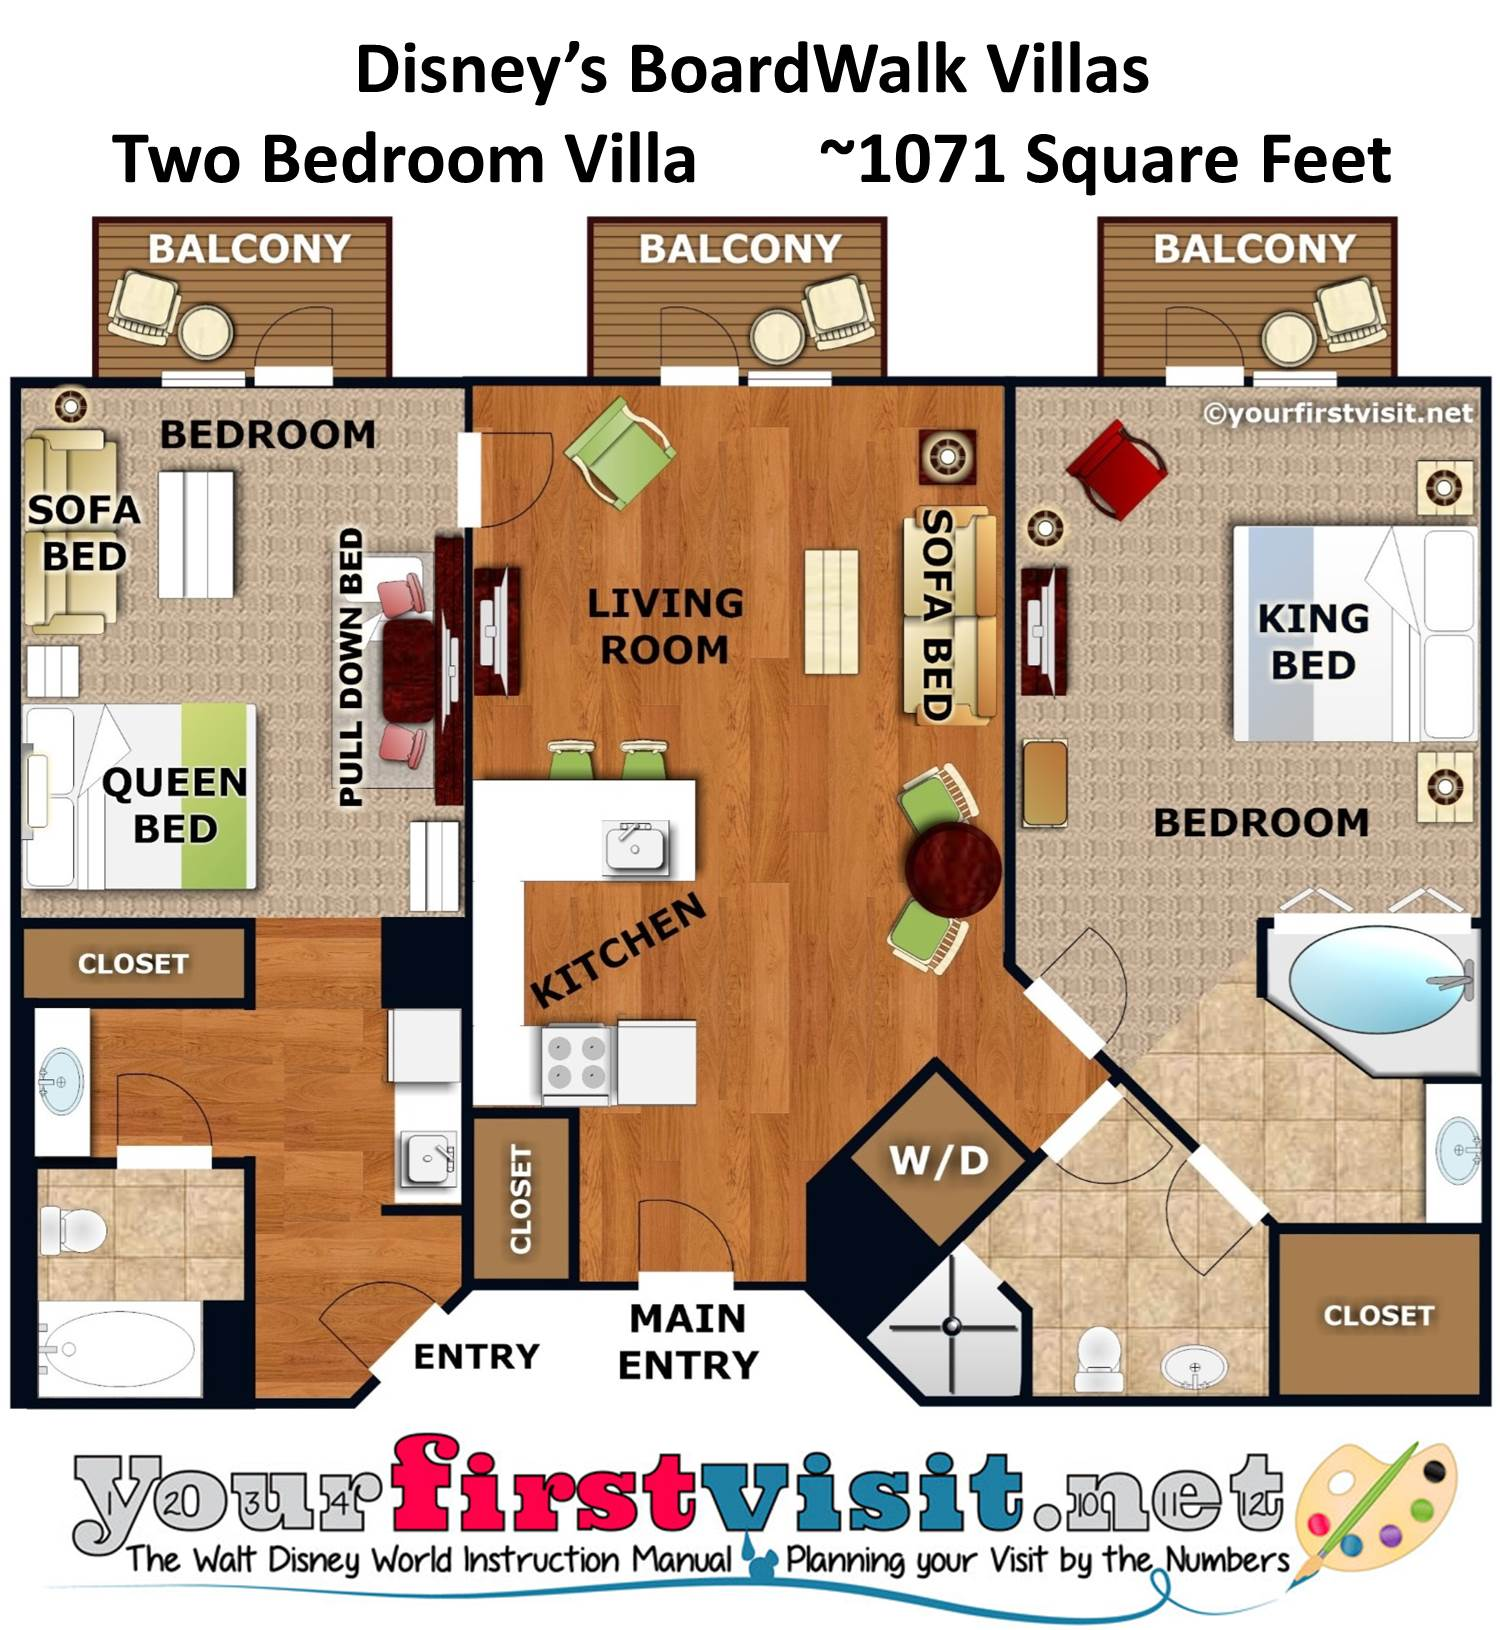 Marriott Grande Vista Floor Plan Review Disney S Boardwalk Villas Yourfirstvisit Net